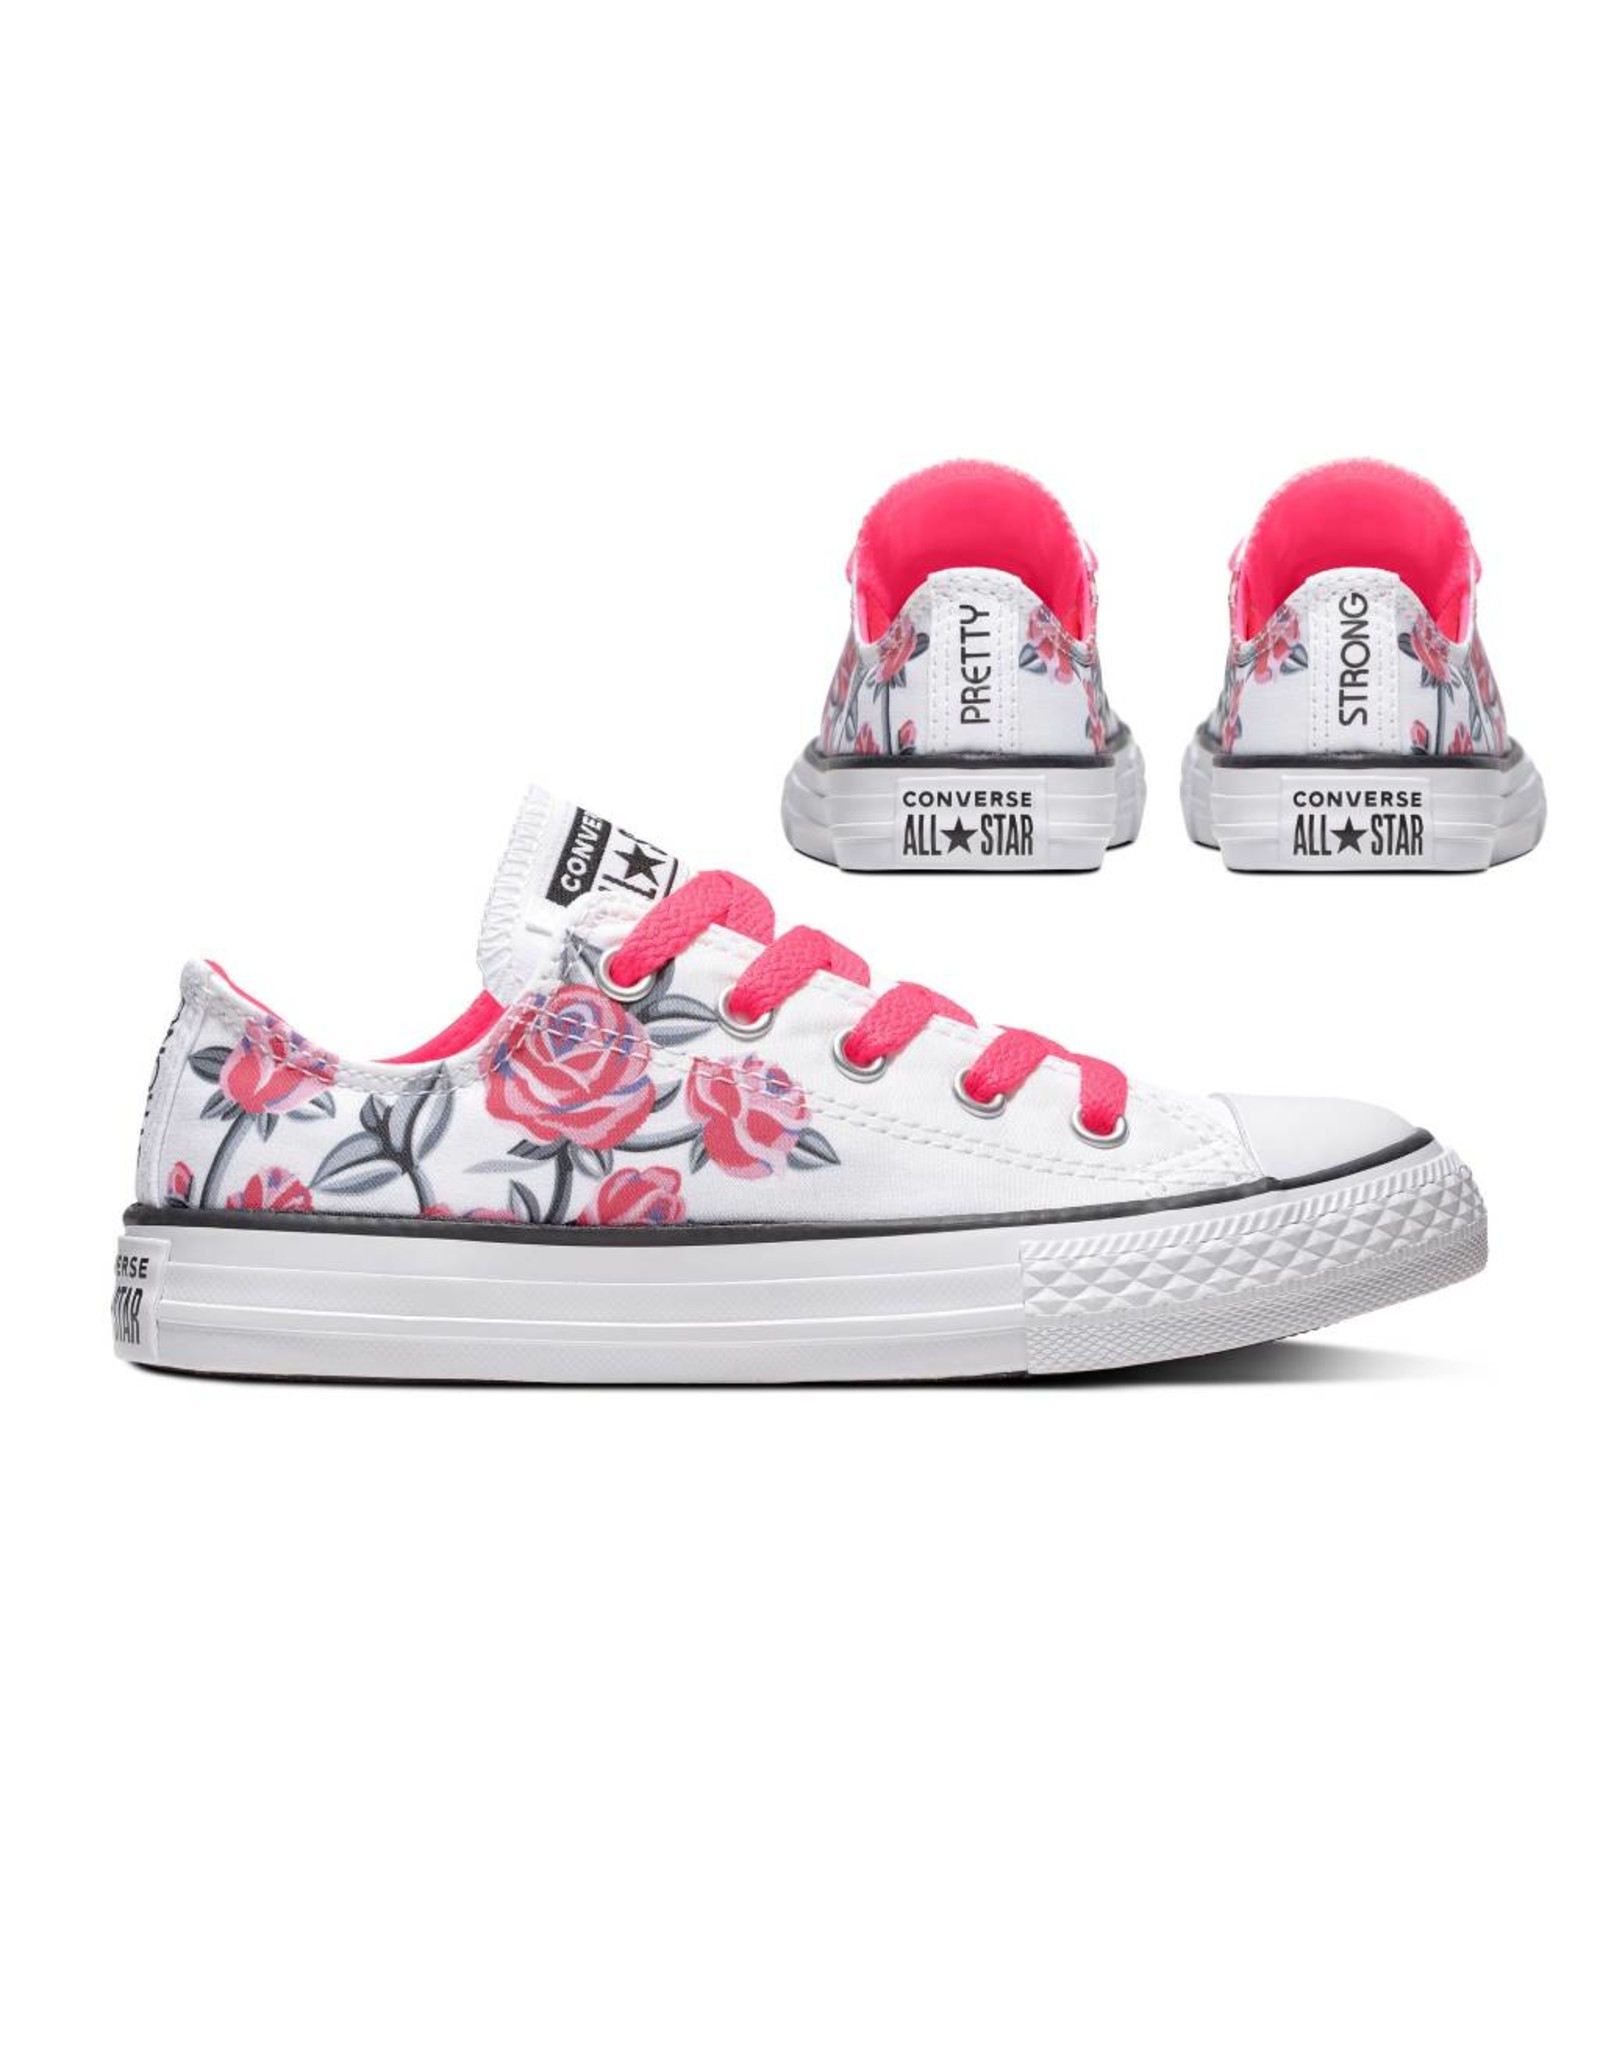 CONVERSE CHUCK TAYLOR ALL STAR OX WHITE/RACER PINK/BLACK CZRPJ-663624C